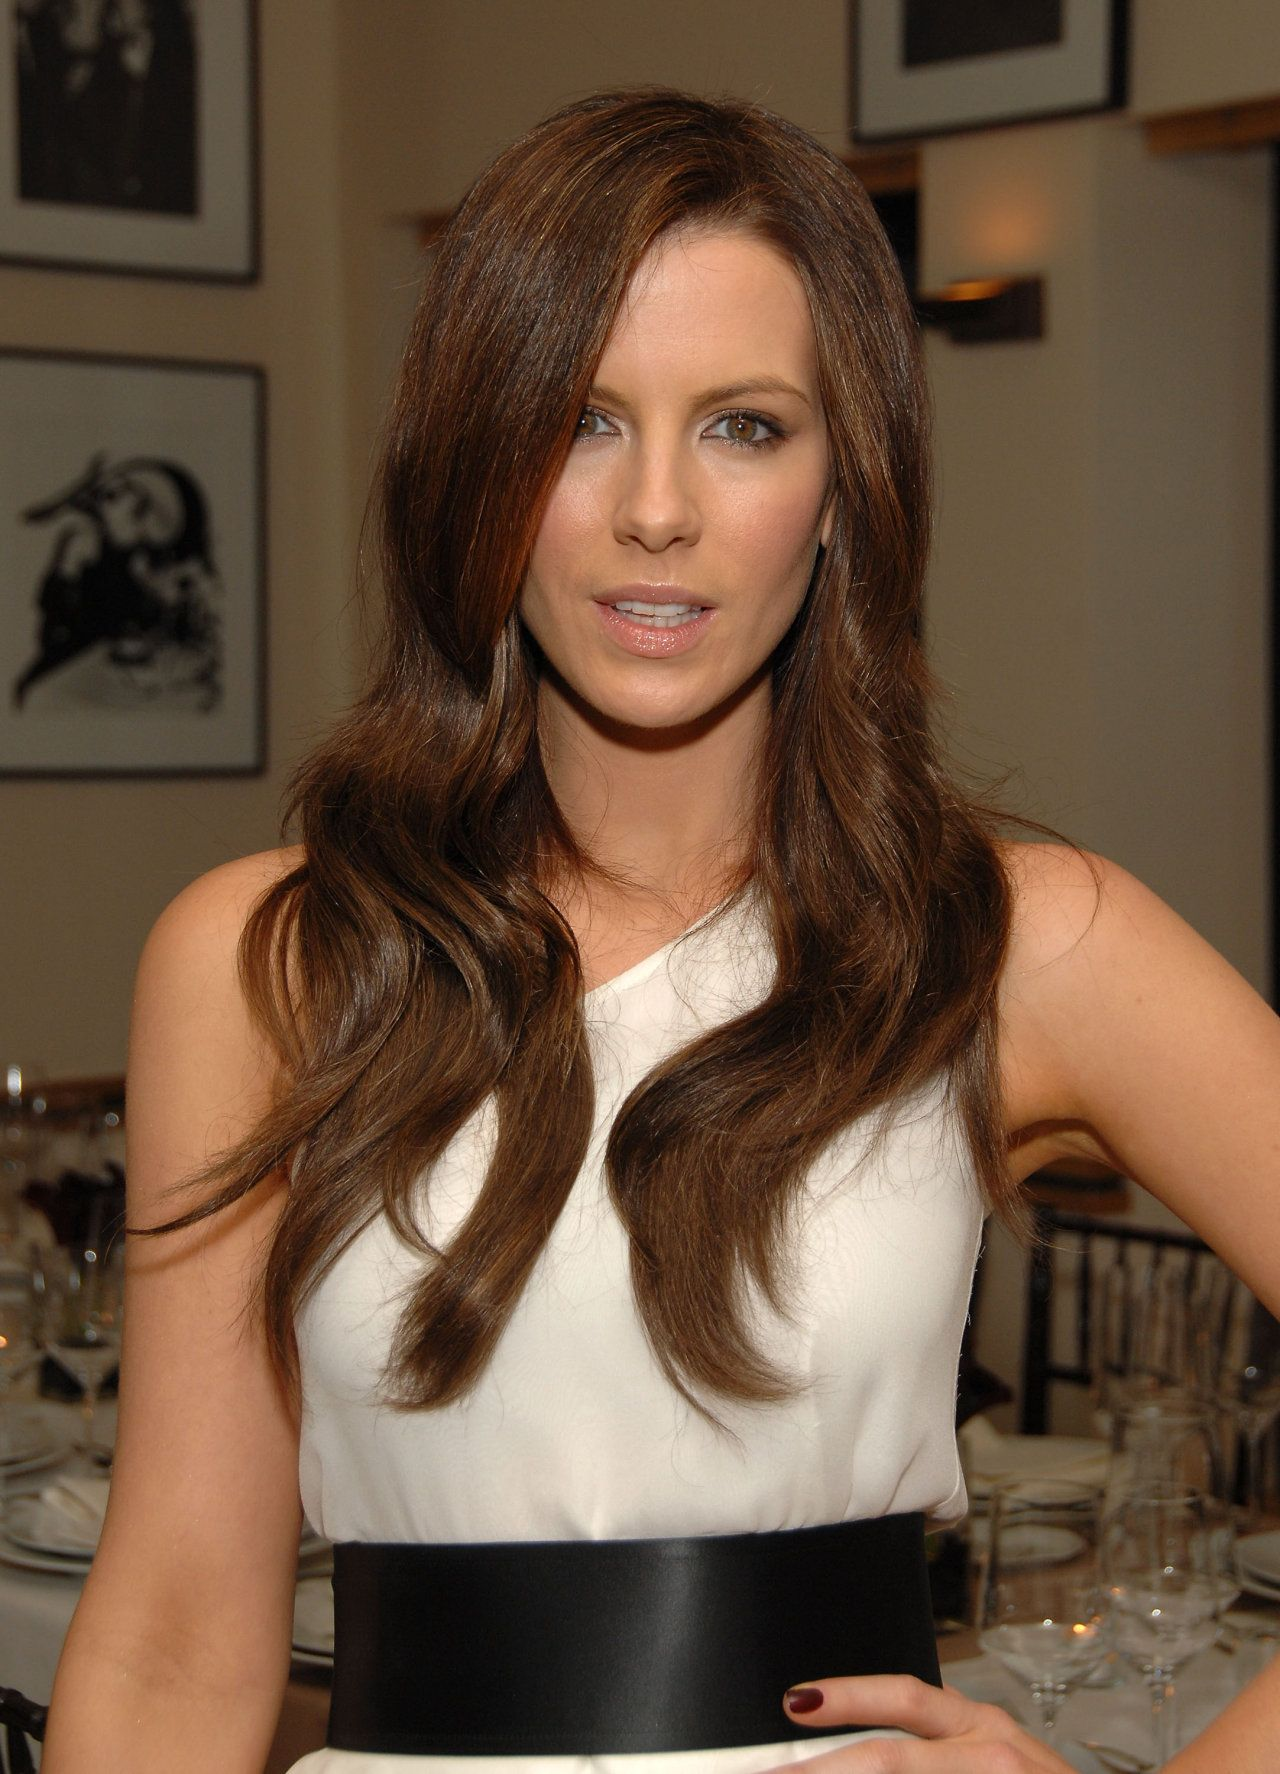 kate beckinsale imdbkate beckinsale 2016, kate beckinsale russian, kate beckinsale vk, kate beckinsale daughter, kate beckinsale instagram, kate beckinsale wiki, kate beckinsale insta, kate beckinsale twitter, kate beckinsale фото, kate beckinsale movies, kate beckinsale биография, kate beckinsale фильмография, kate beckinsale films, kate beckinsale ургант, kate beckinsale fan site, kate beckinsale фильмы, kate beckinsale style, kate beckinsale interview, kate beckinsale boyfriend, kate beckinsale imdb